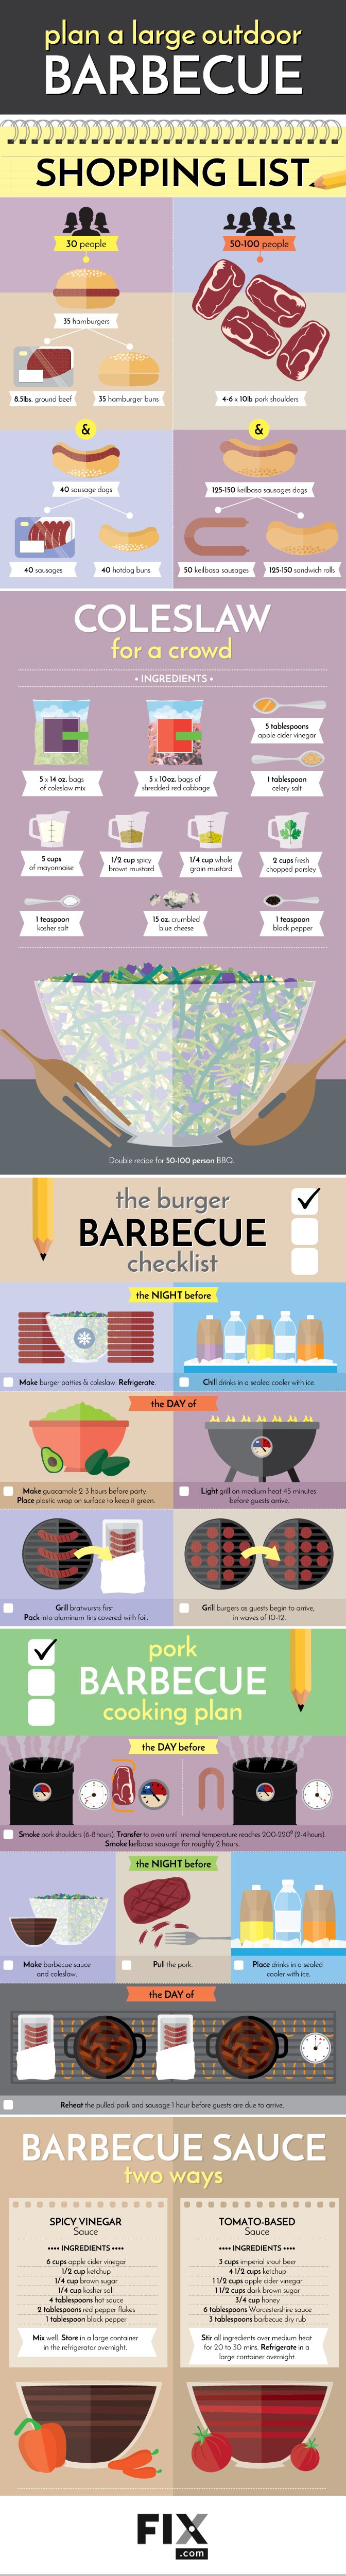 Plan a Large Outdoor Barbecue #infographic #Food #Barbecue More